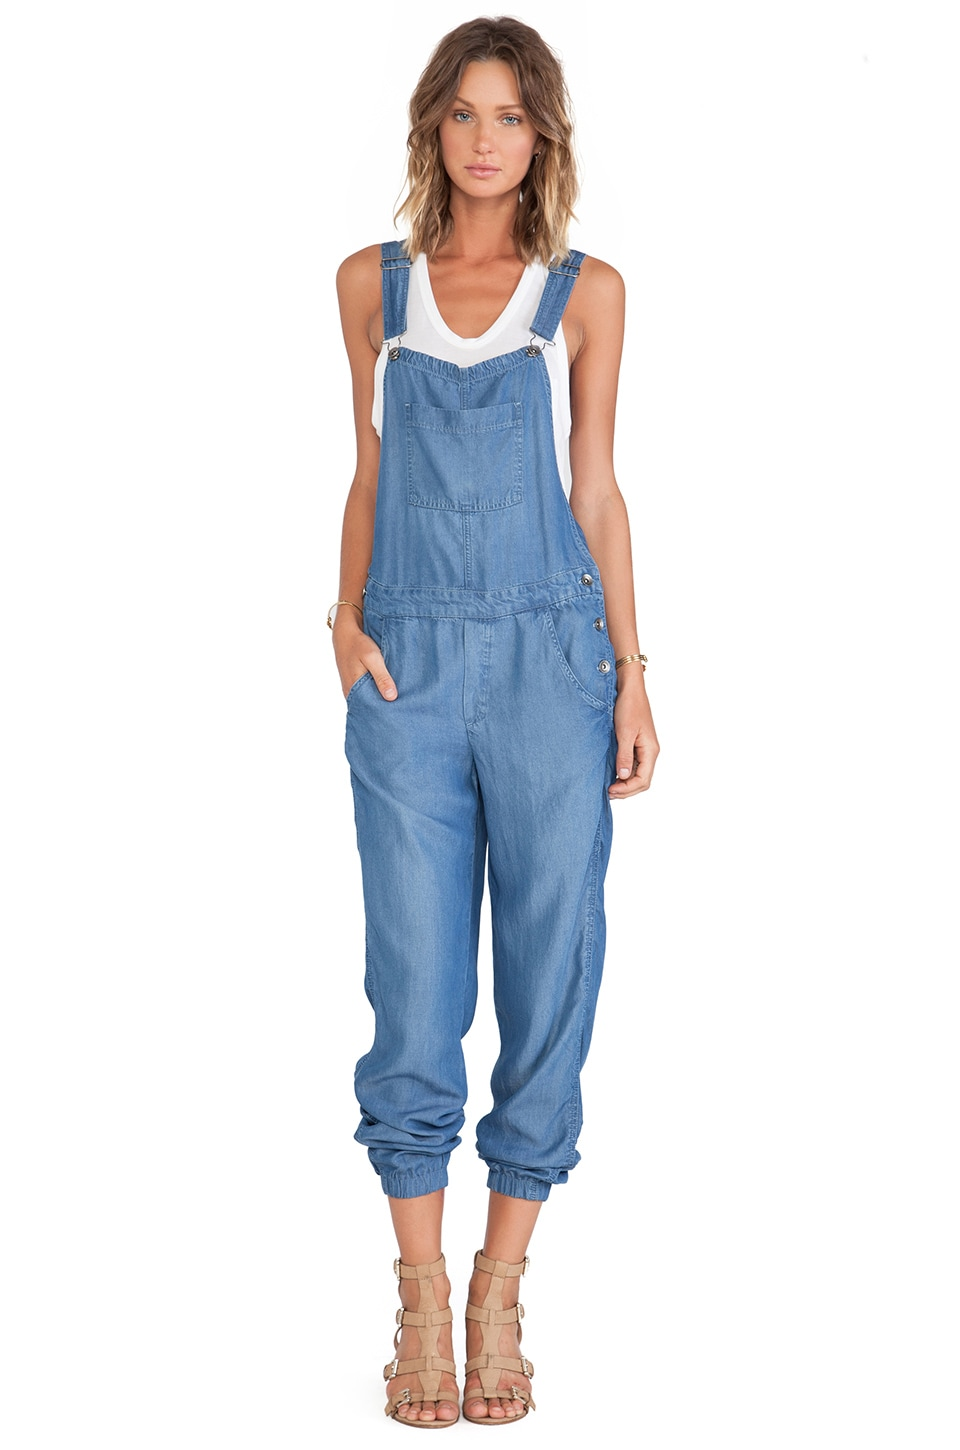 Splendid Indigo Dye Overalls in Medium Wash